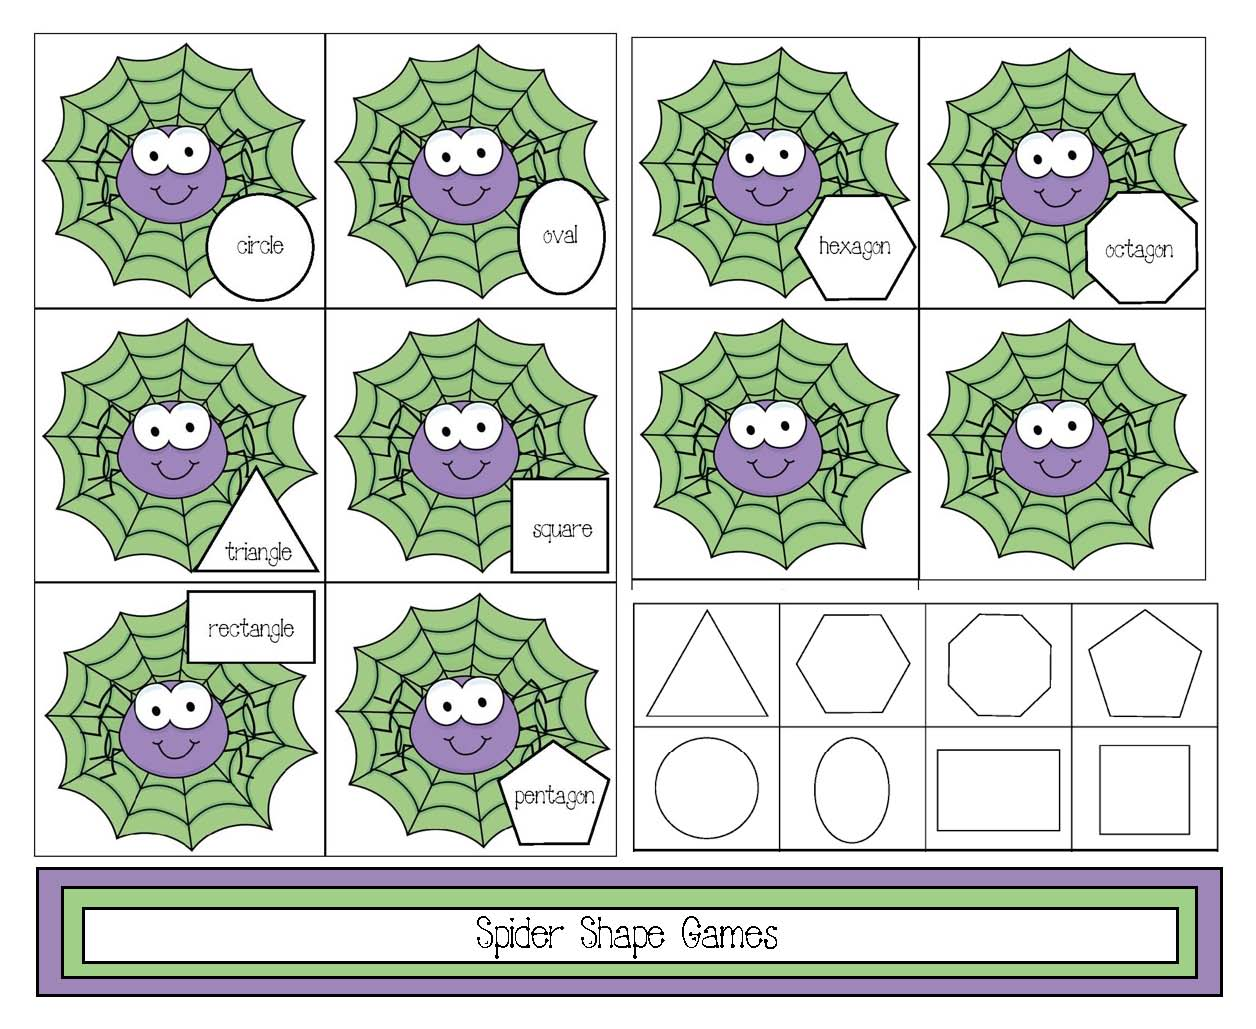 2D spider themed shape game, spider activities, spider games, spider crafts, alphabet crafts, alphabet assessments, alphabet games